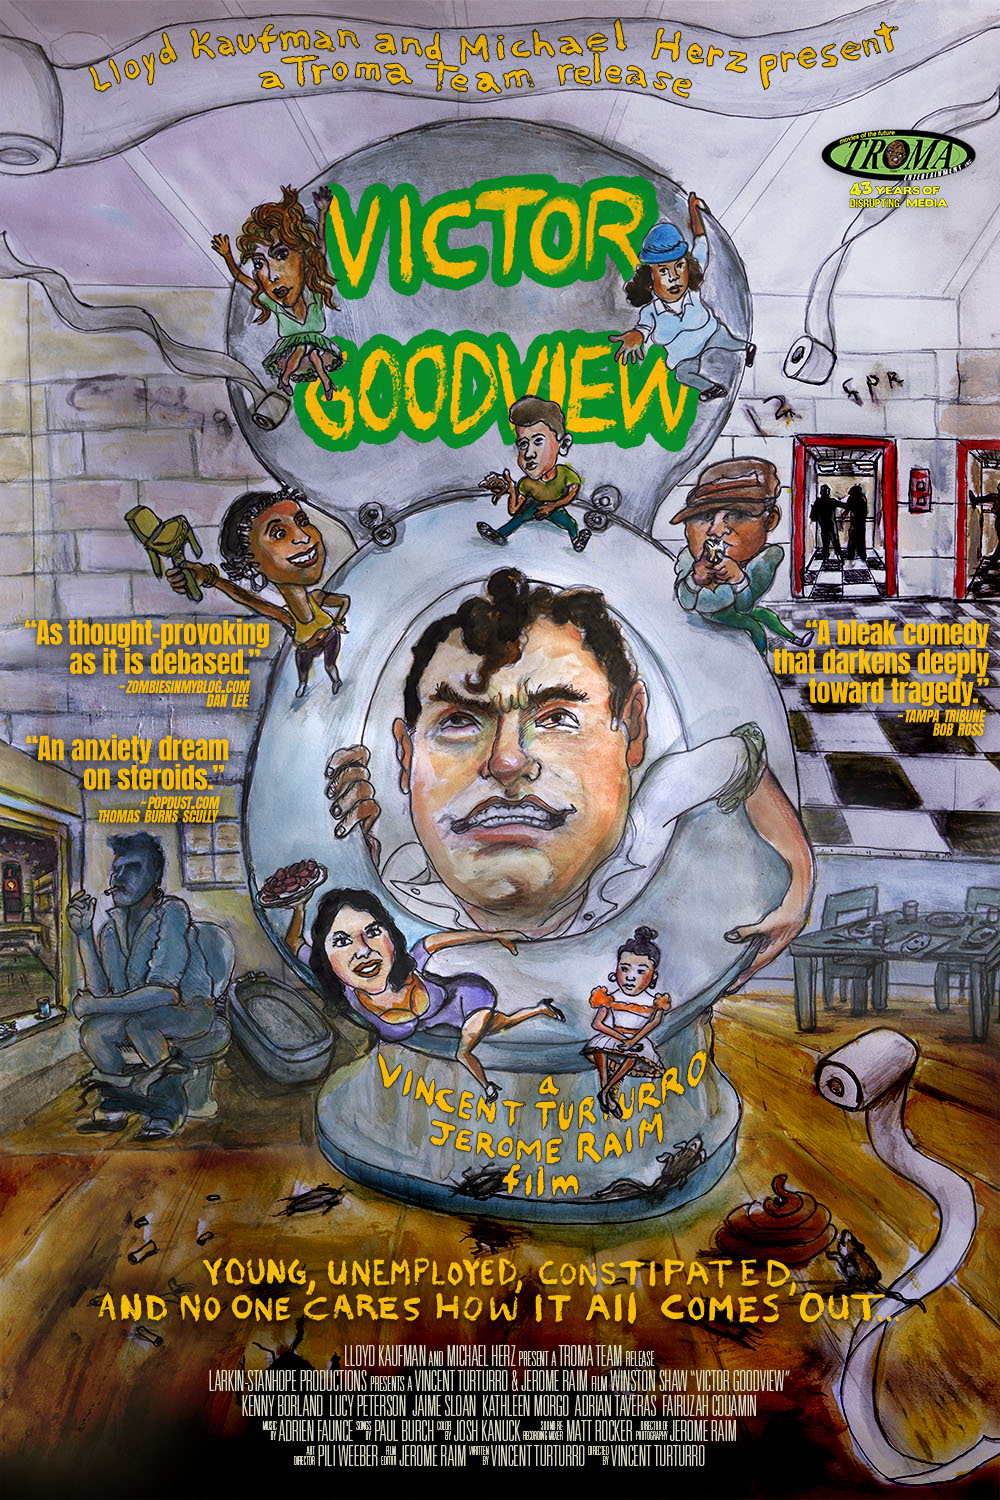 VictorGoodview_Poster03A.jpg